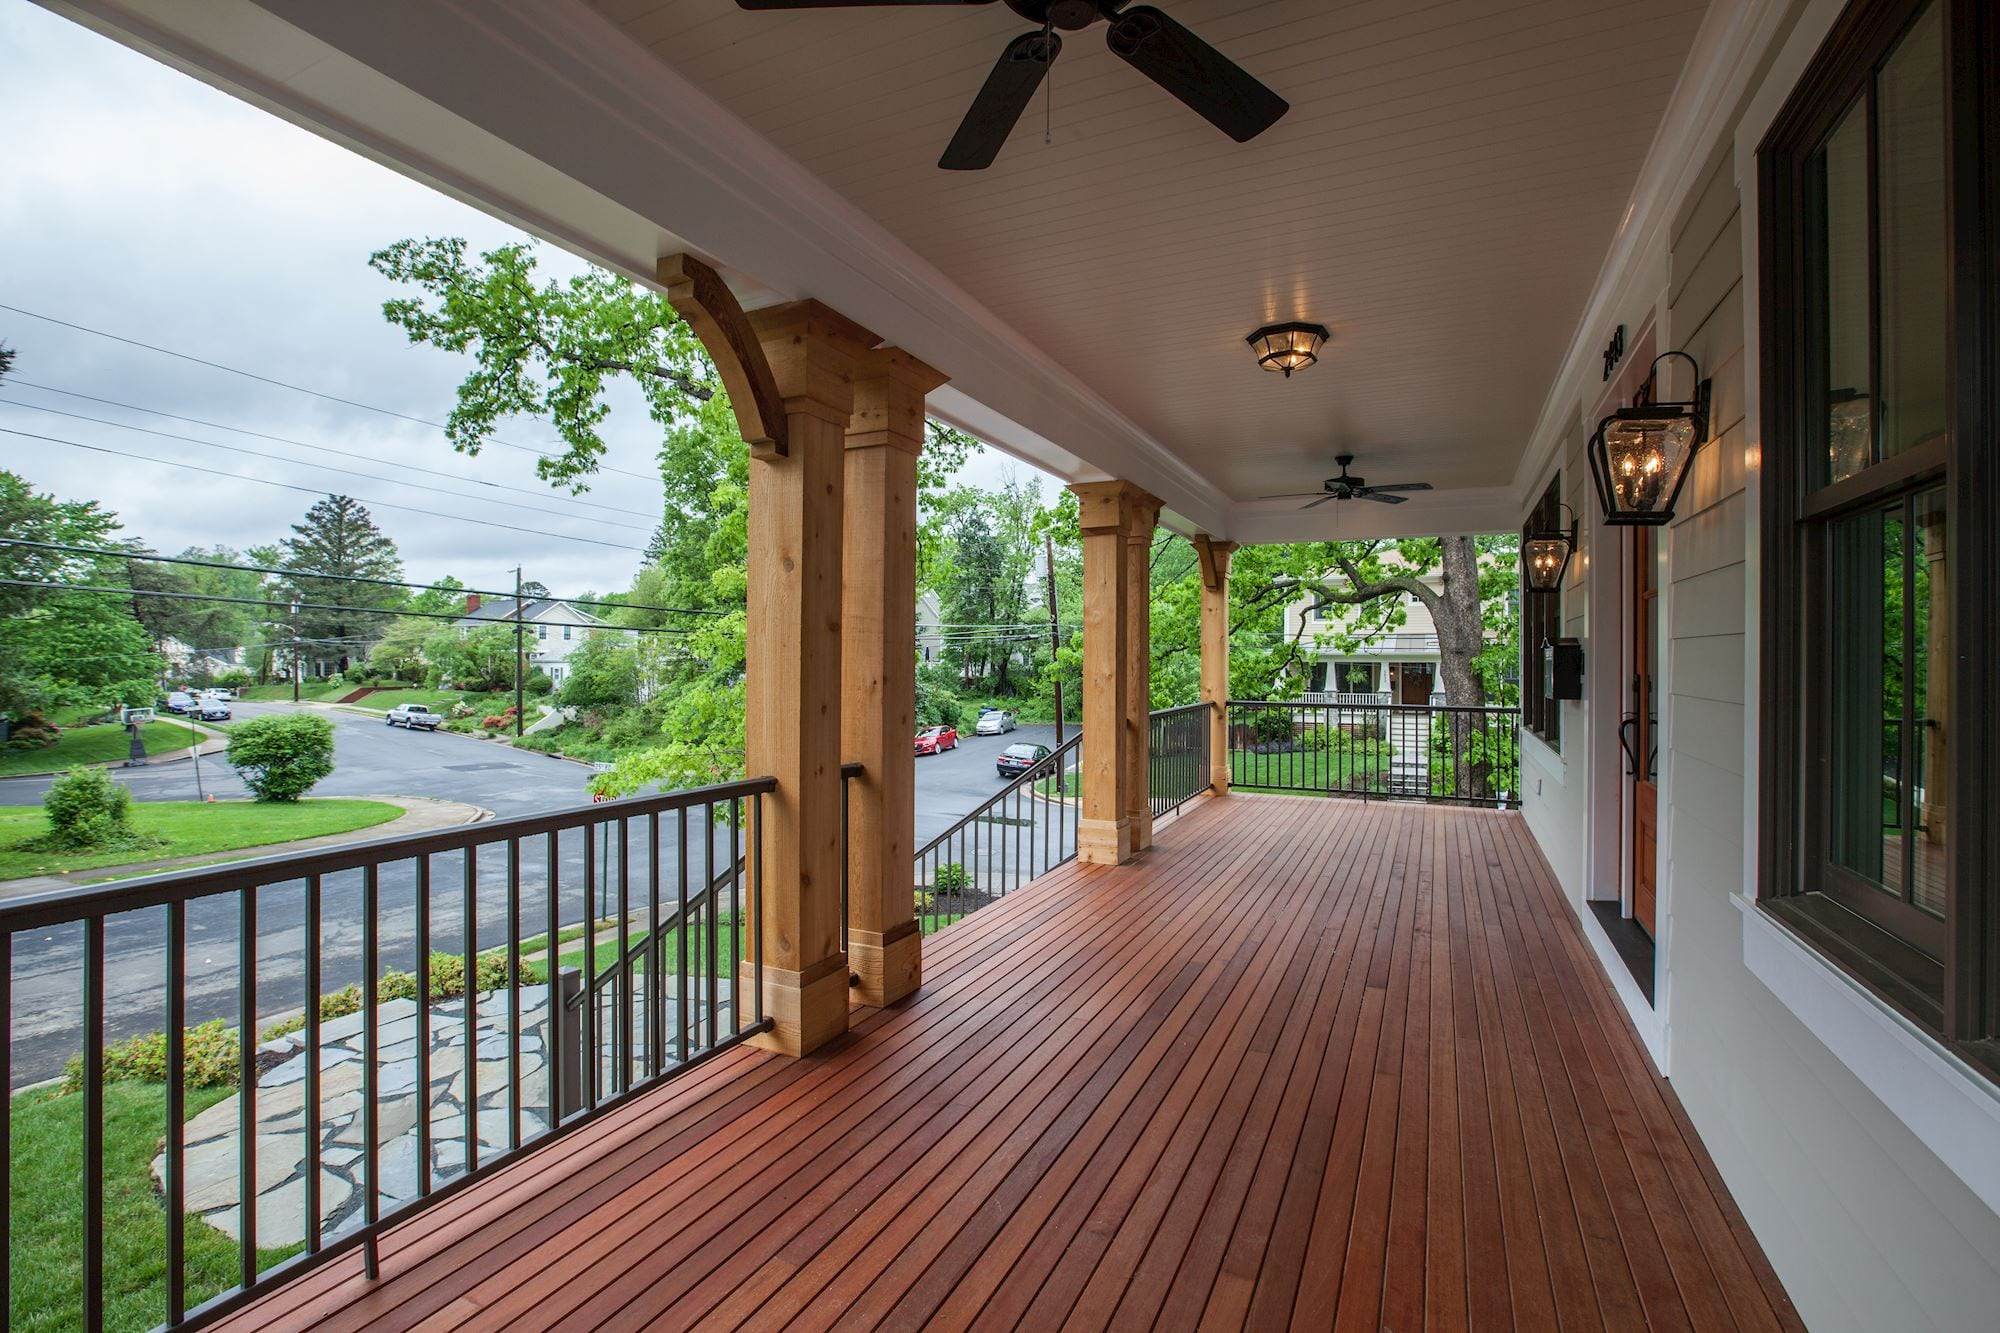 Spacious front porch with mahogany decking and cedar posts. Custom Home by Custom Builder, North Arlington, VA 22207